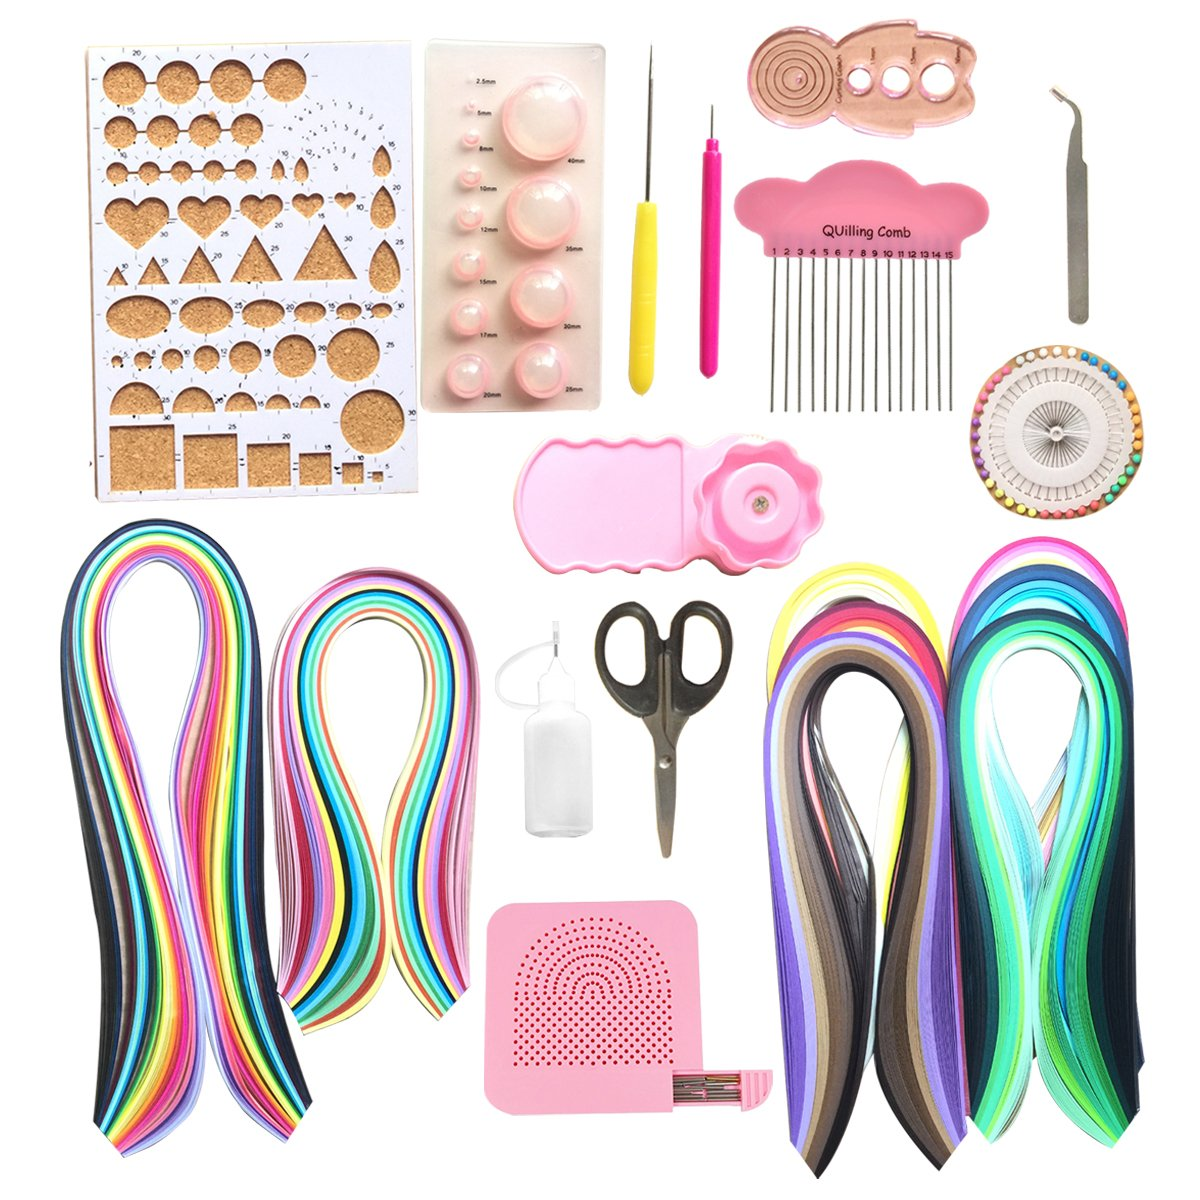 Lantee Quilling Supplies - 20 Sets of Quilling Paper Kits Include 8 Pack of 3mm 960 Quilling Paper Strips and 12 Quilling Tools 4336890045